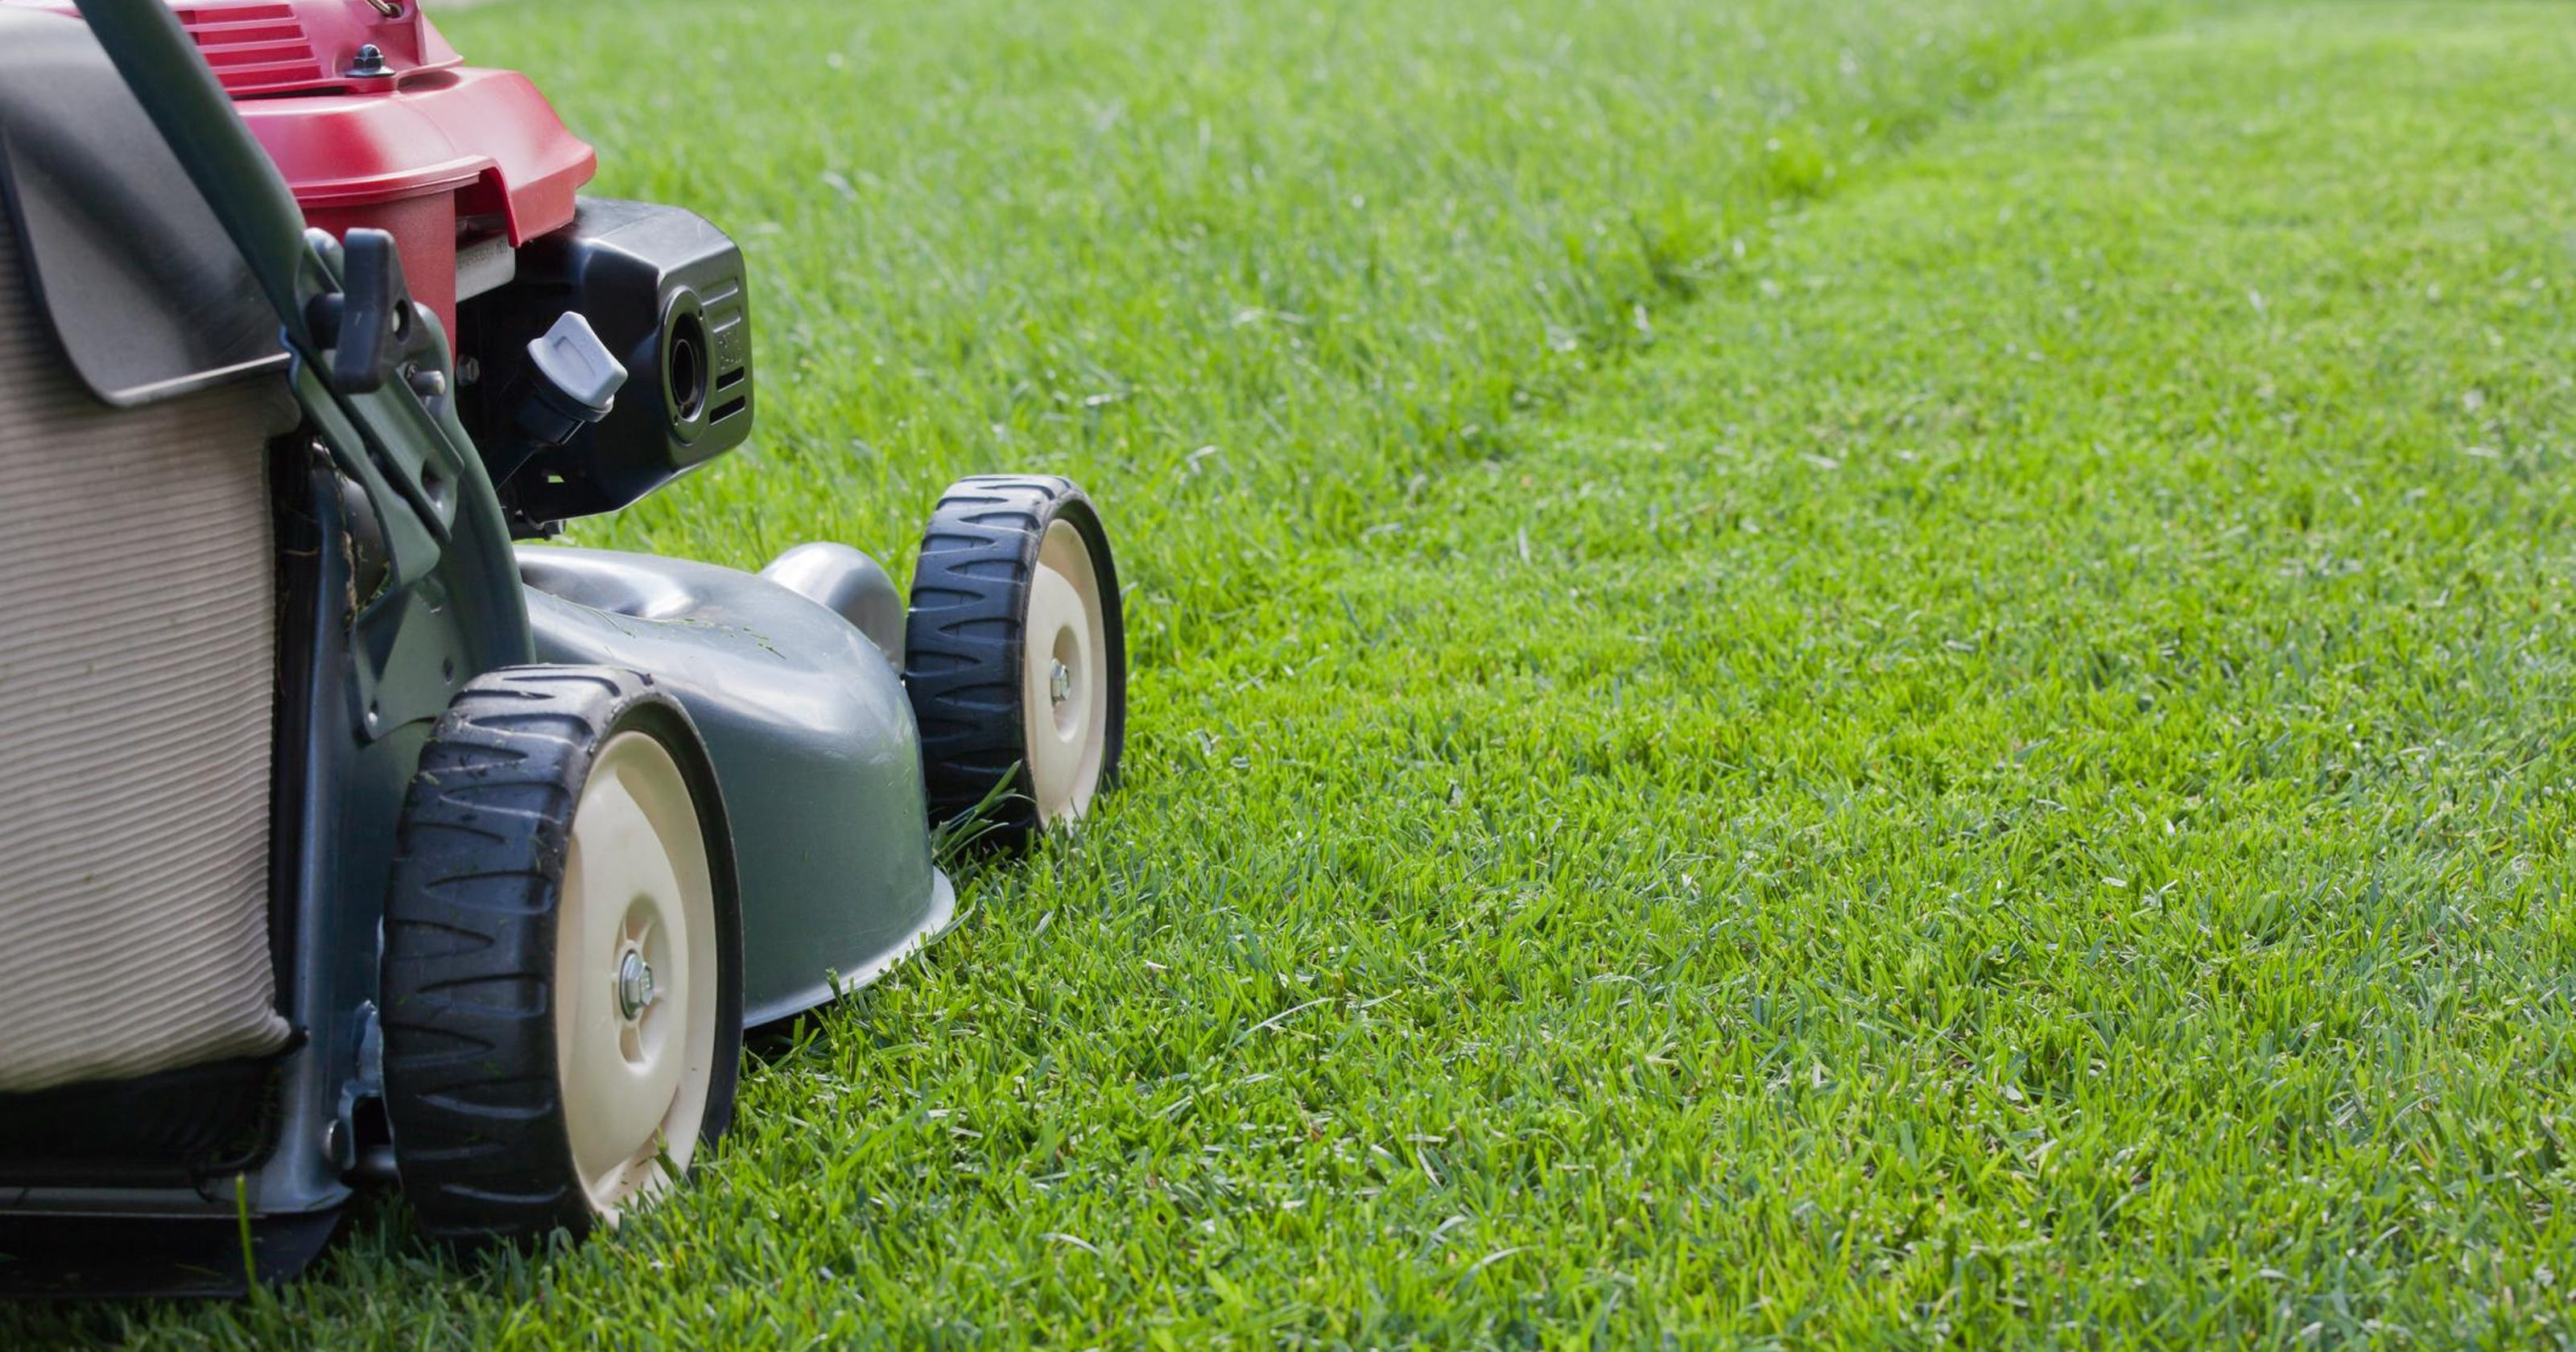 On mowing: 'Grass always disappoints'